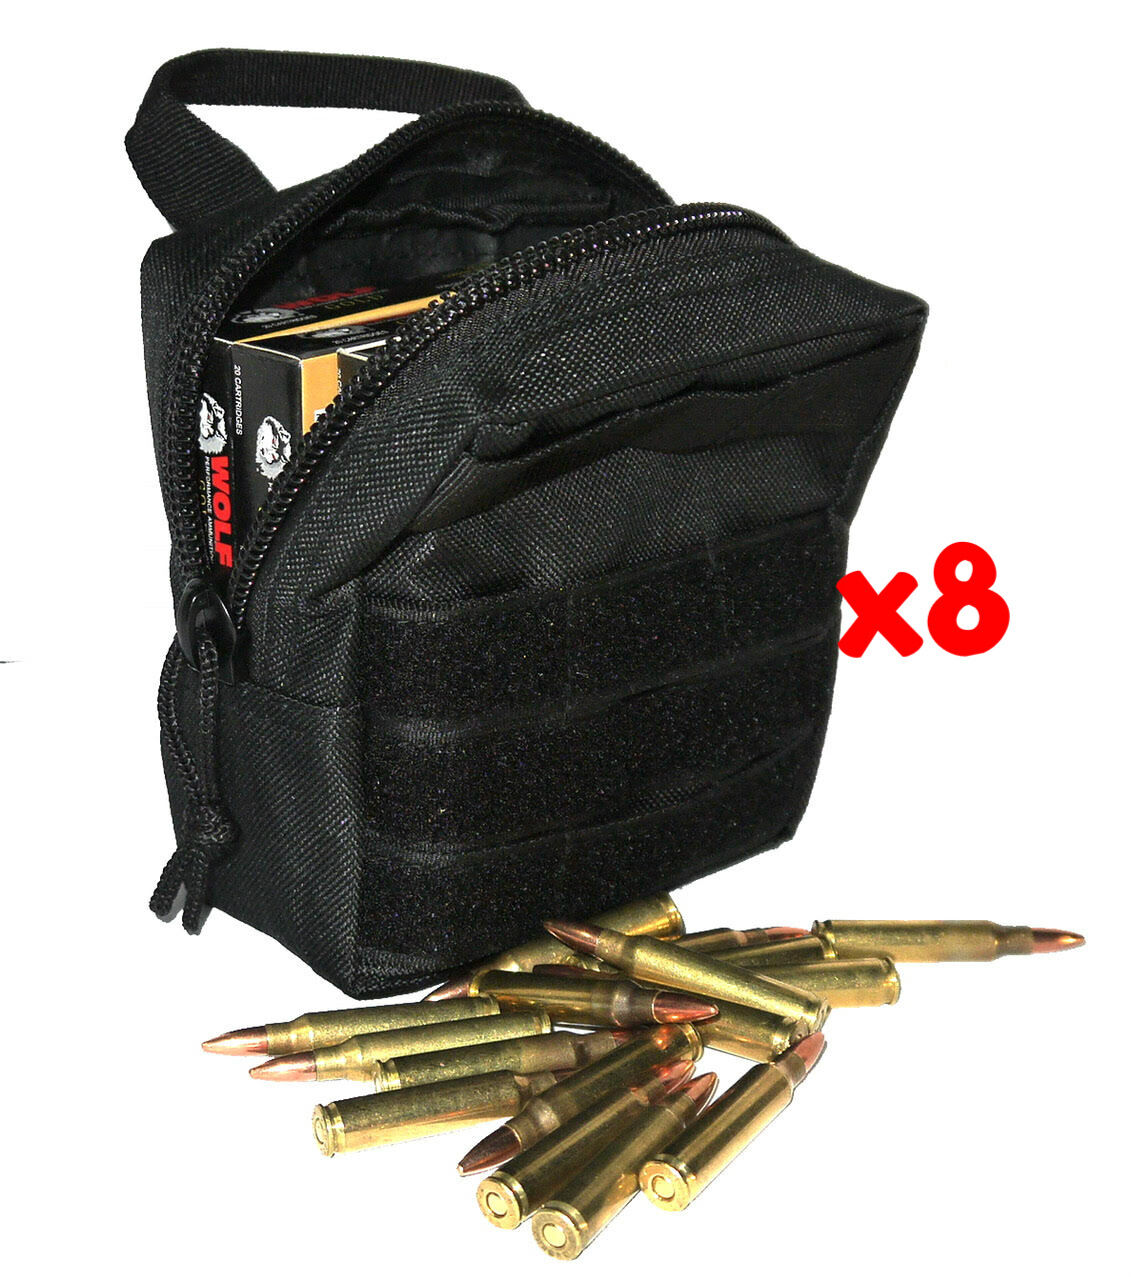 (8) .223 REMINGTON AMMO MODULAR MOLLE UTILITY POUCHES FRONT HOOK LOOP STRAP